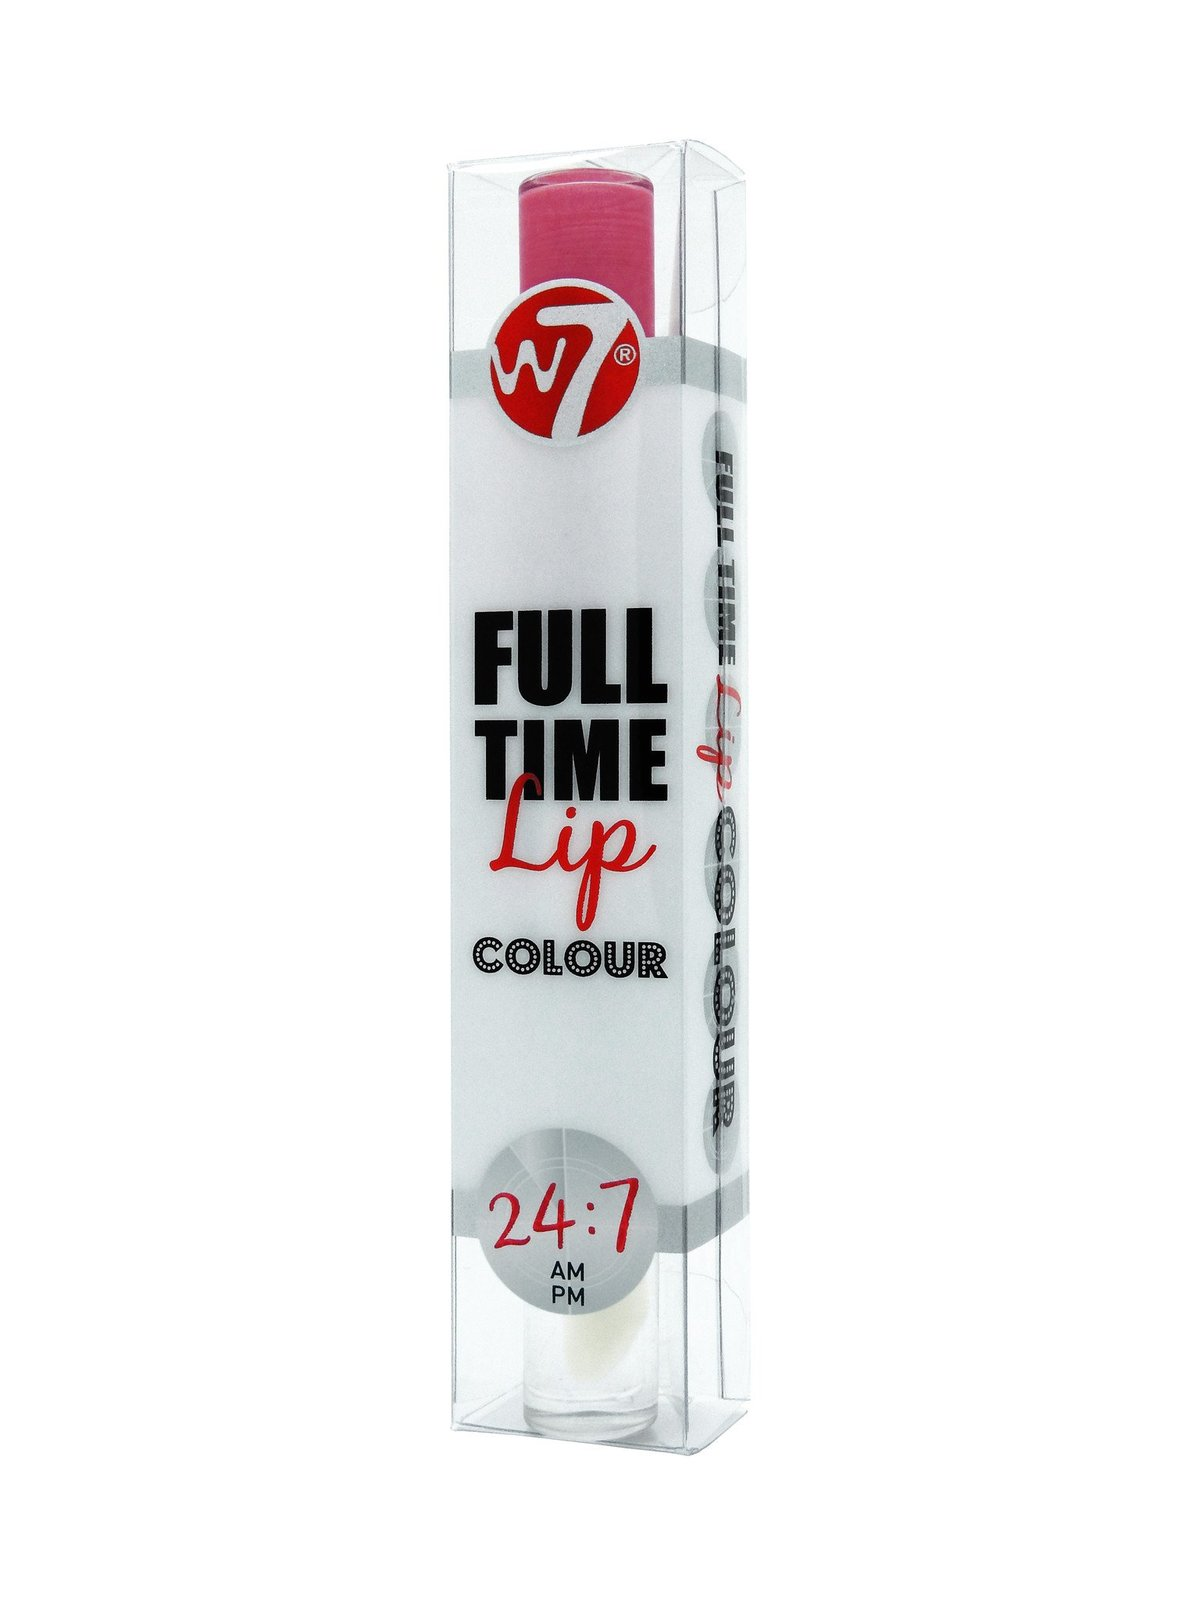 W7 Full Time Lip Colour (Angel Dust) image